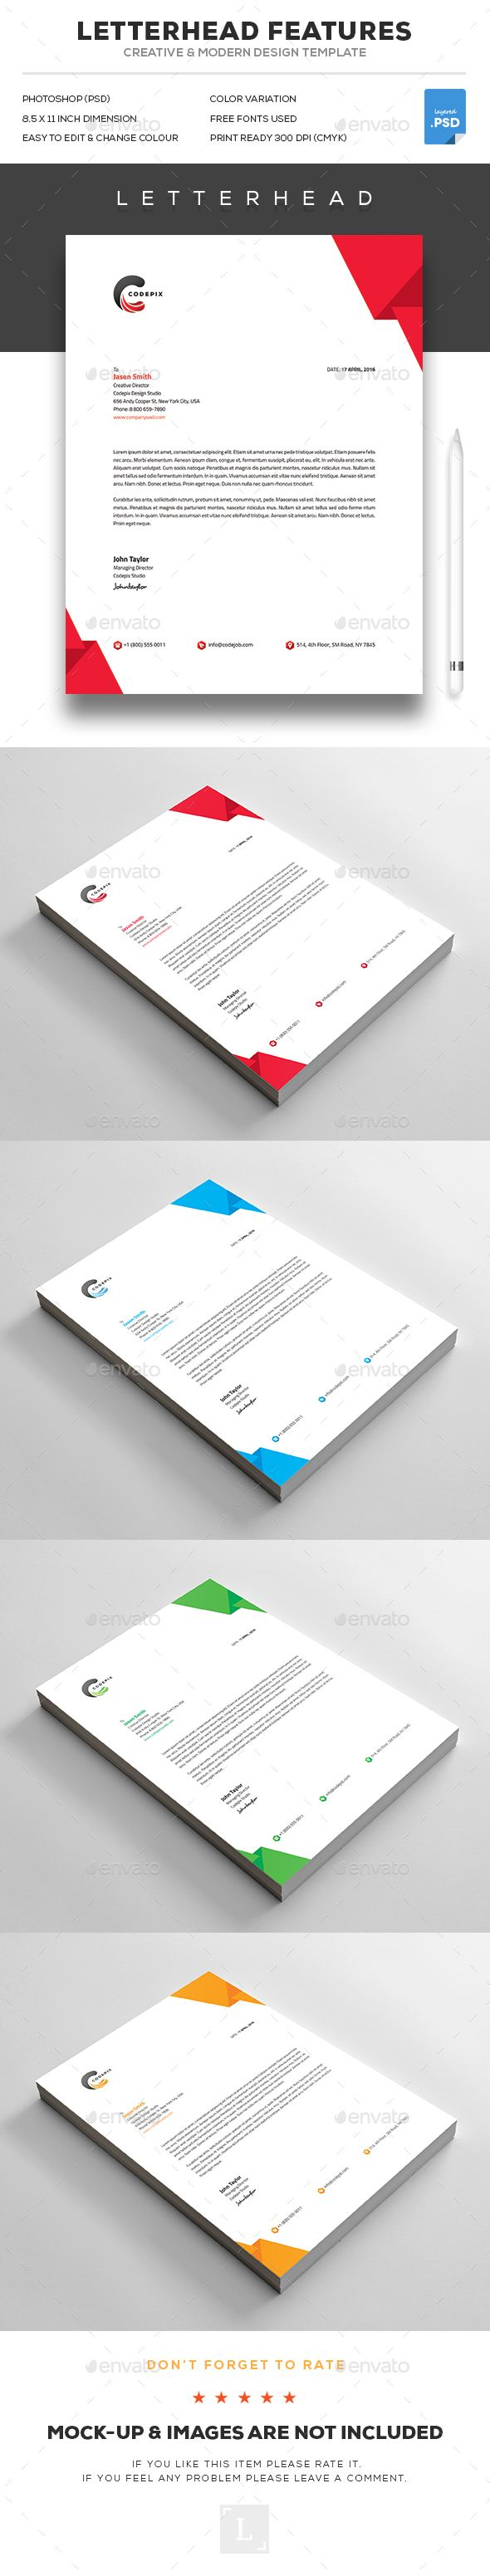 7 best letterhead design images on pinterest business branding letterhead spiritdancerdesigns Choice Image